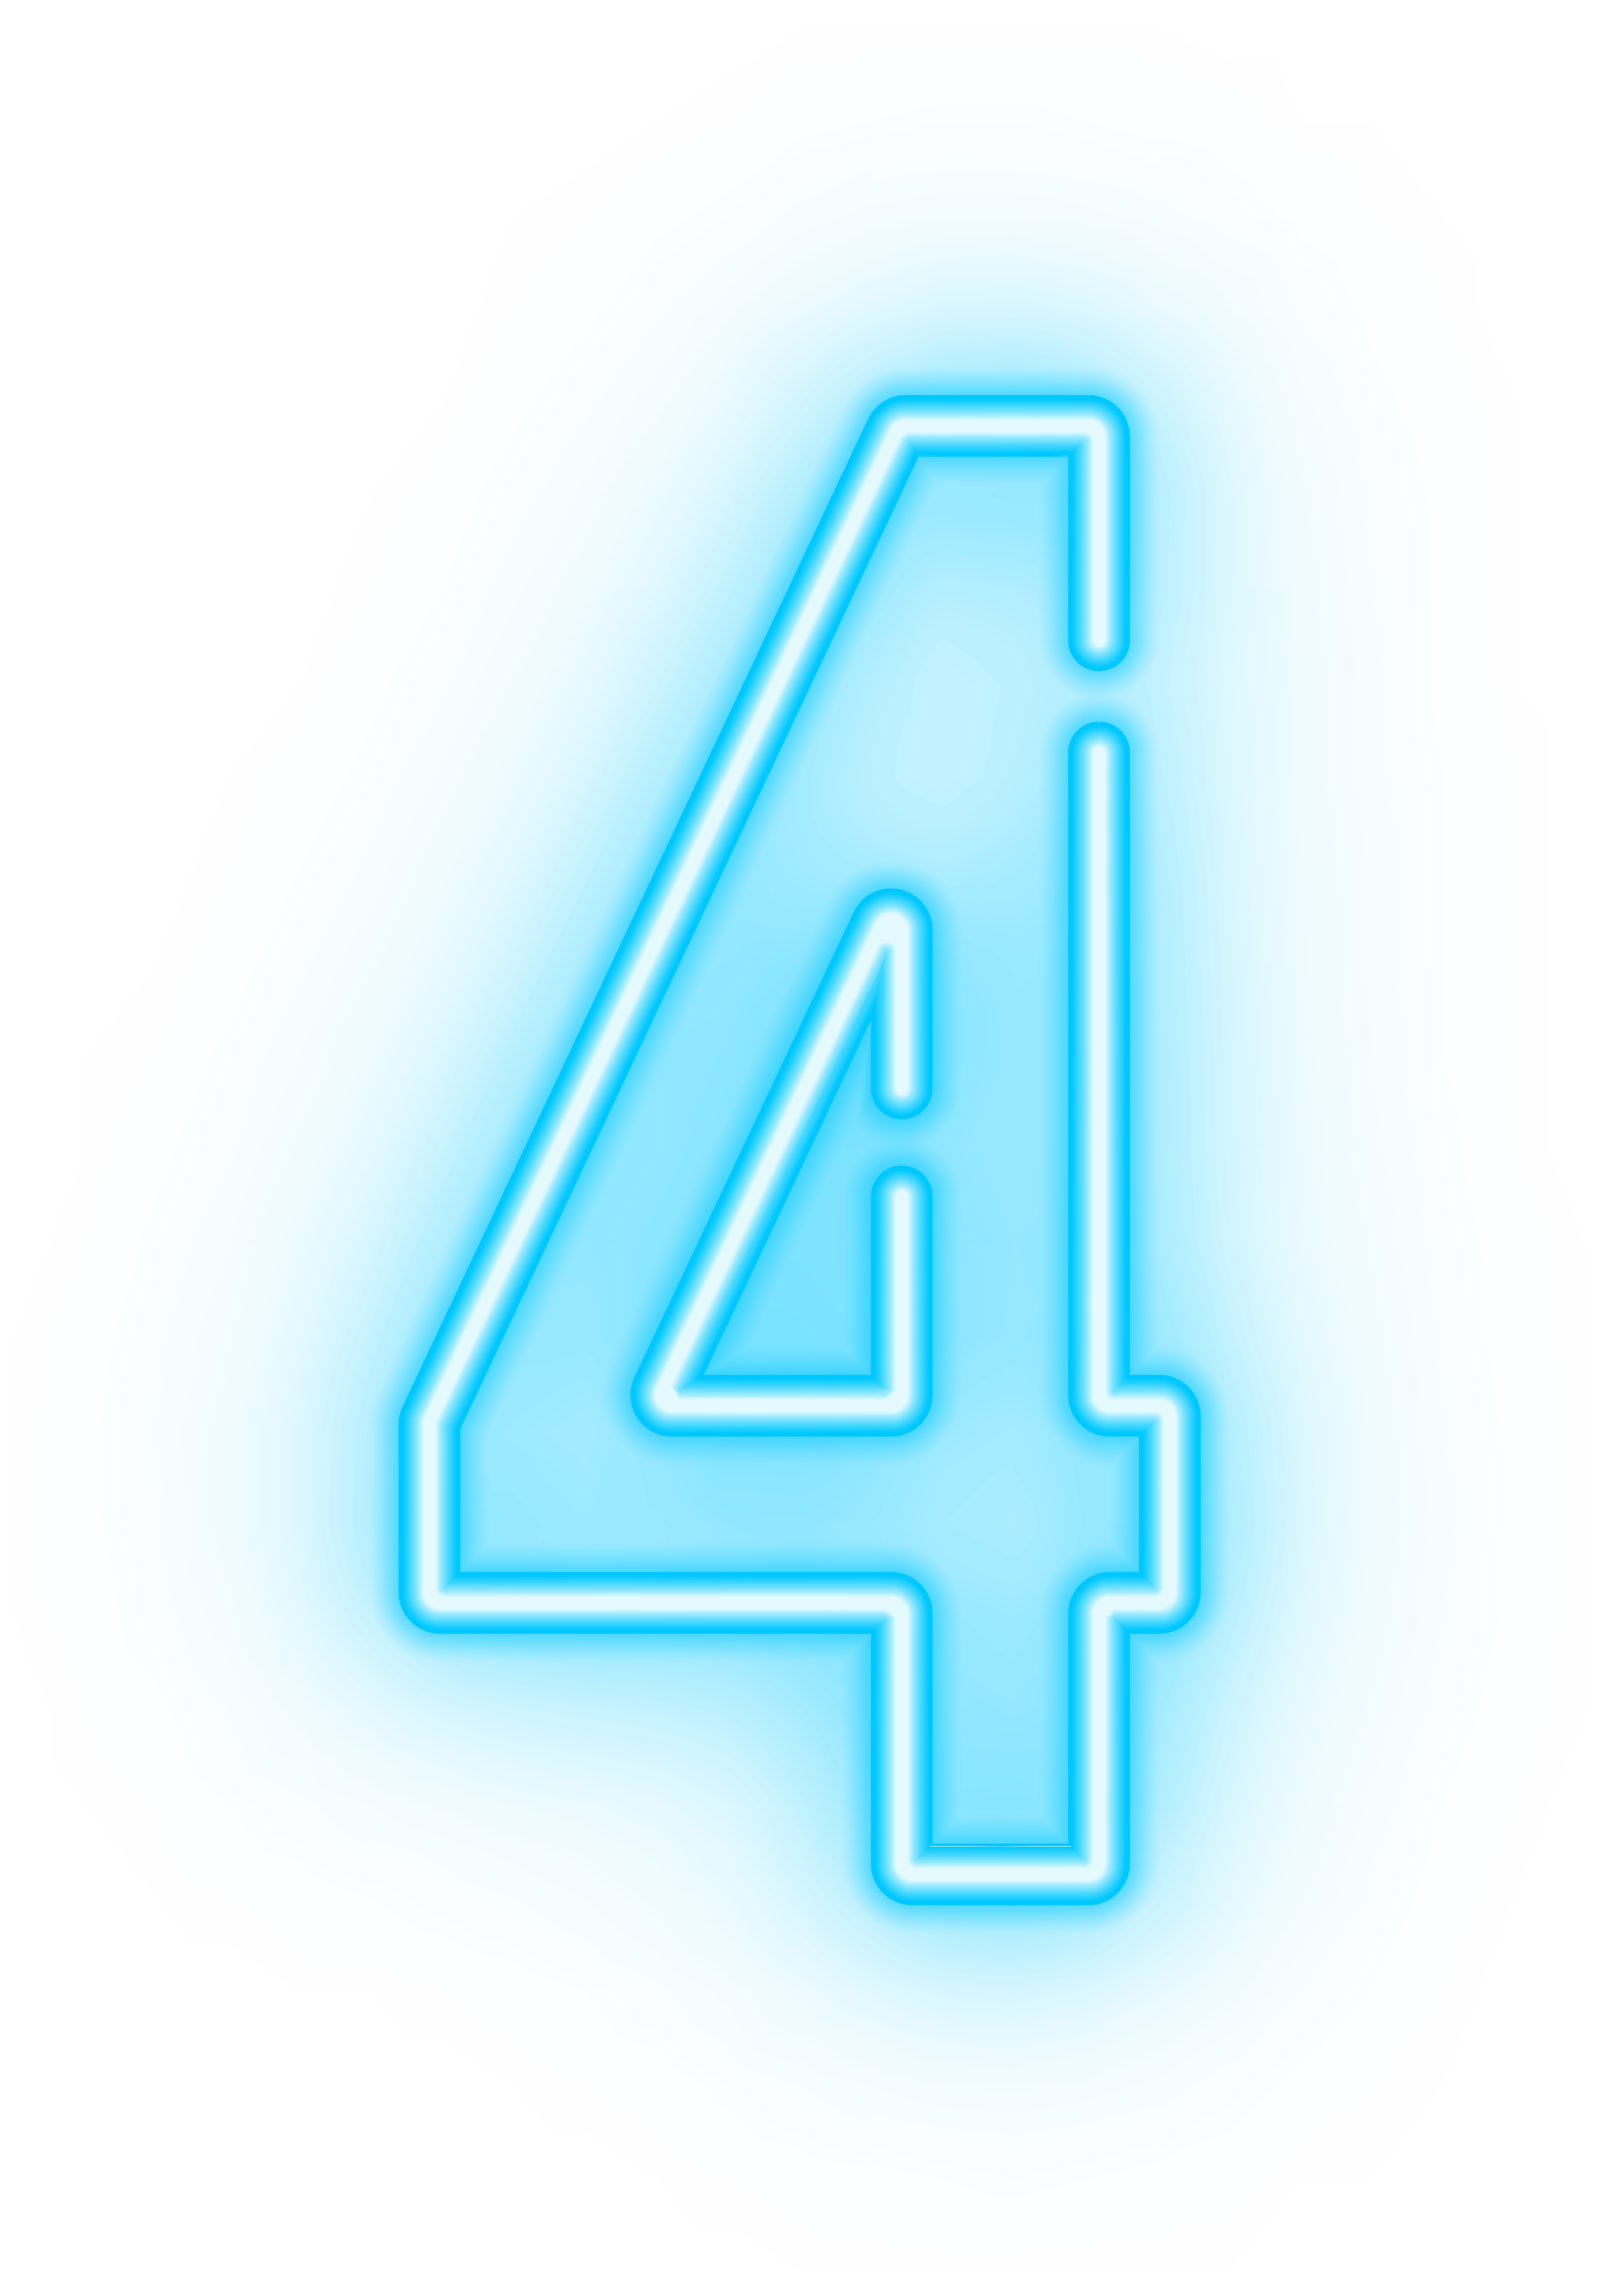 Neon number four clip. 4 clipart transparent